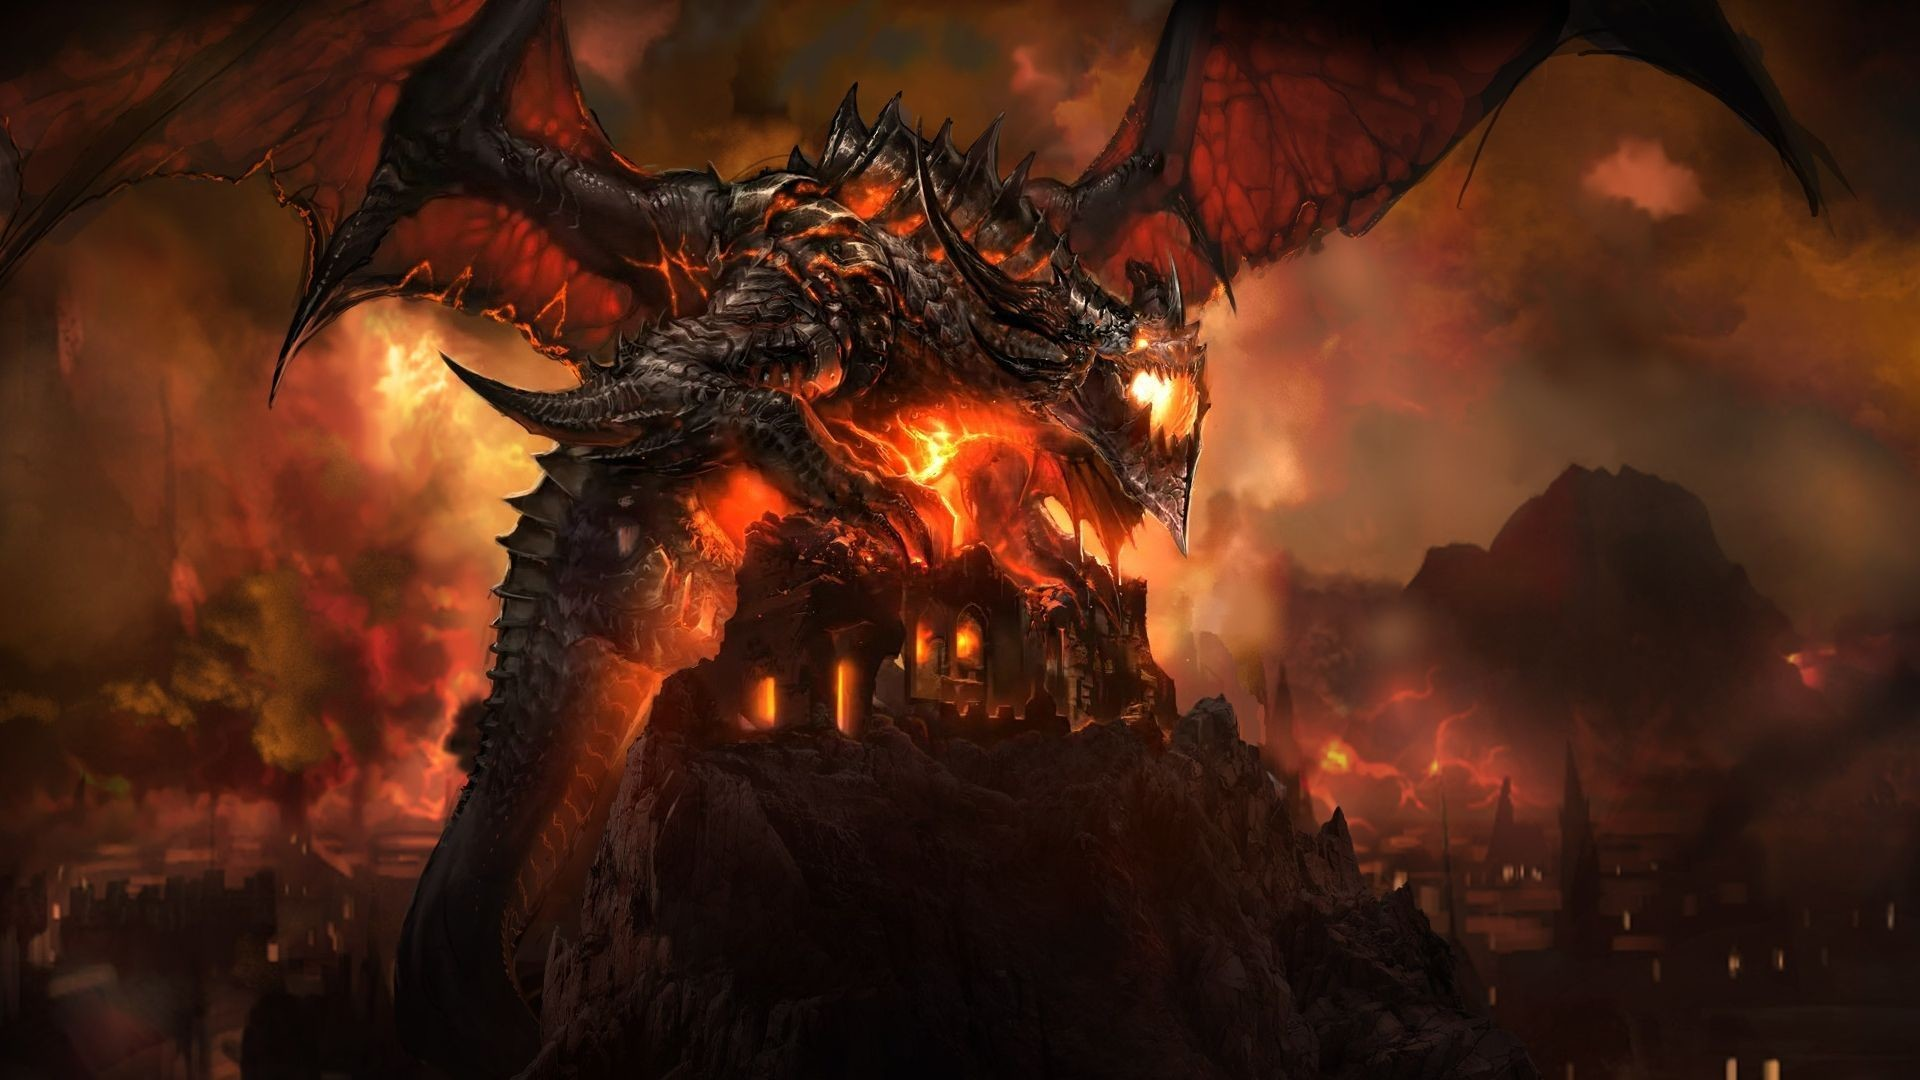 Fire Dragon images